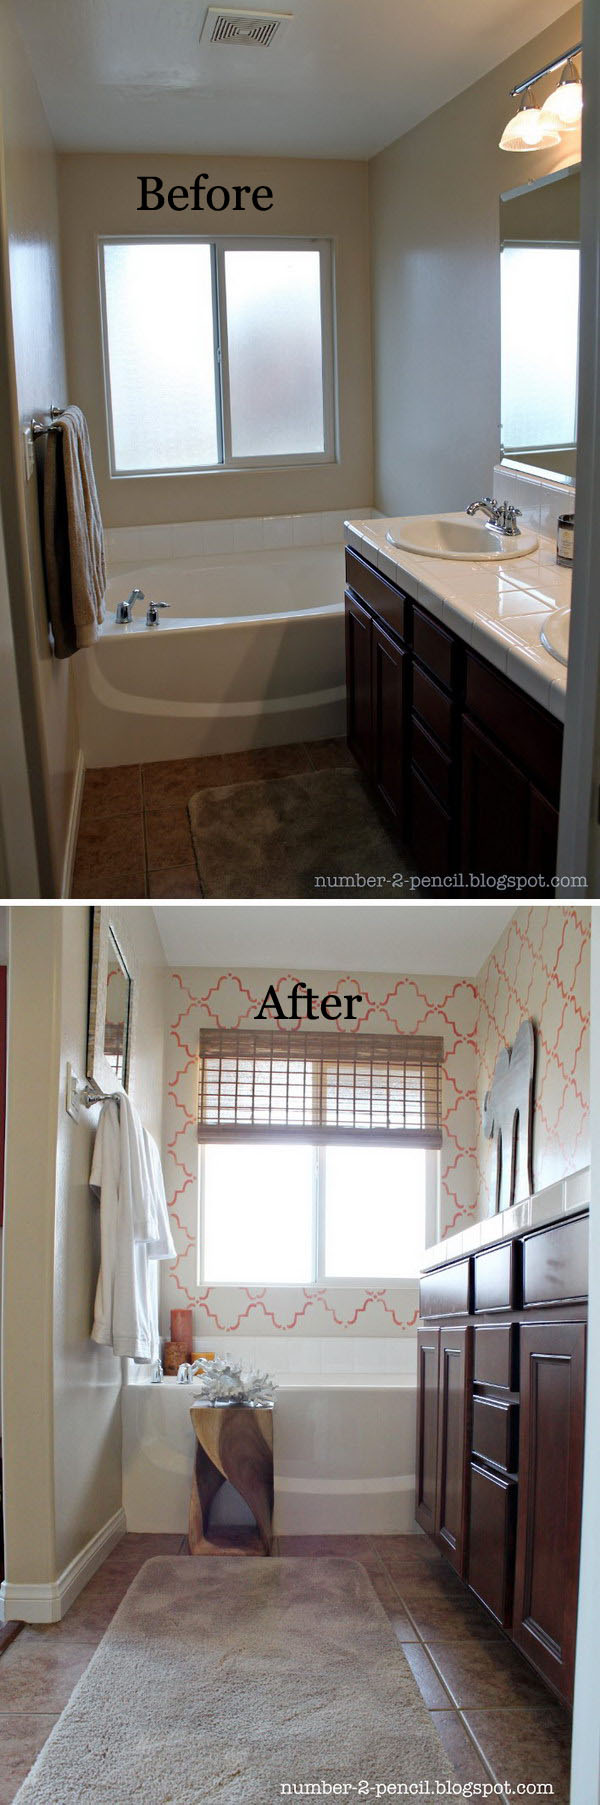 23-24-bathroom-remodel-before-and-after